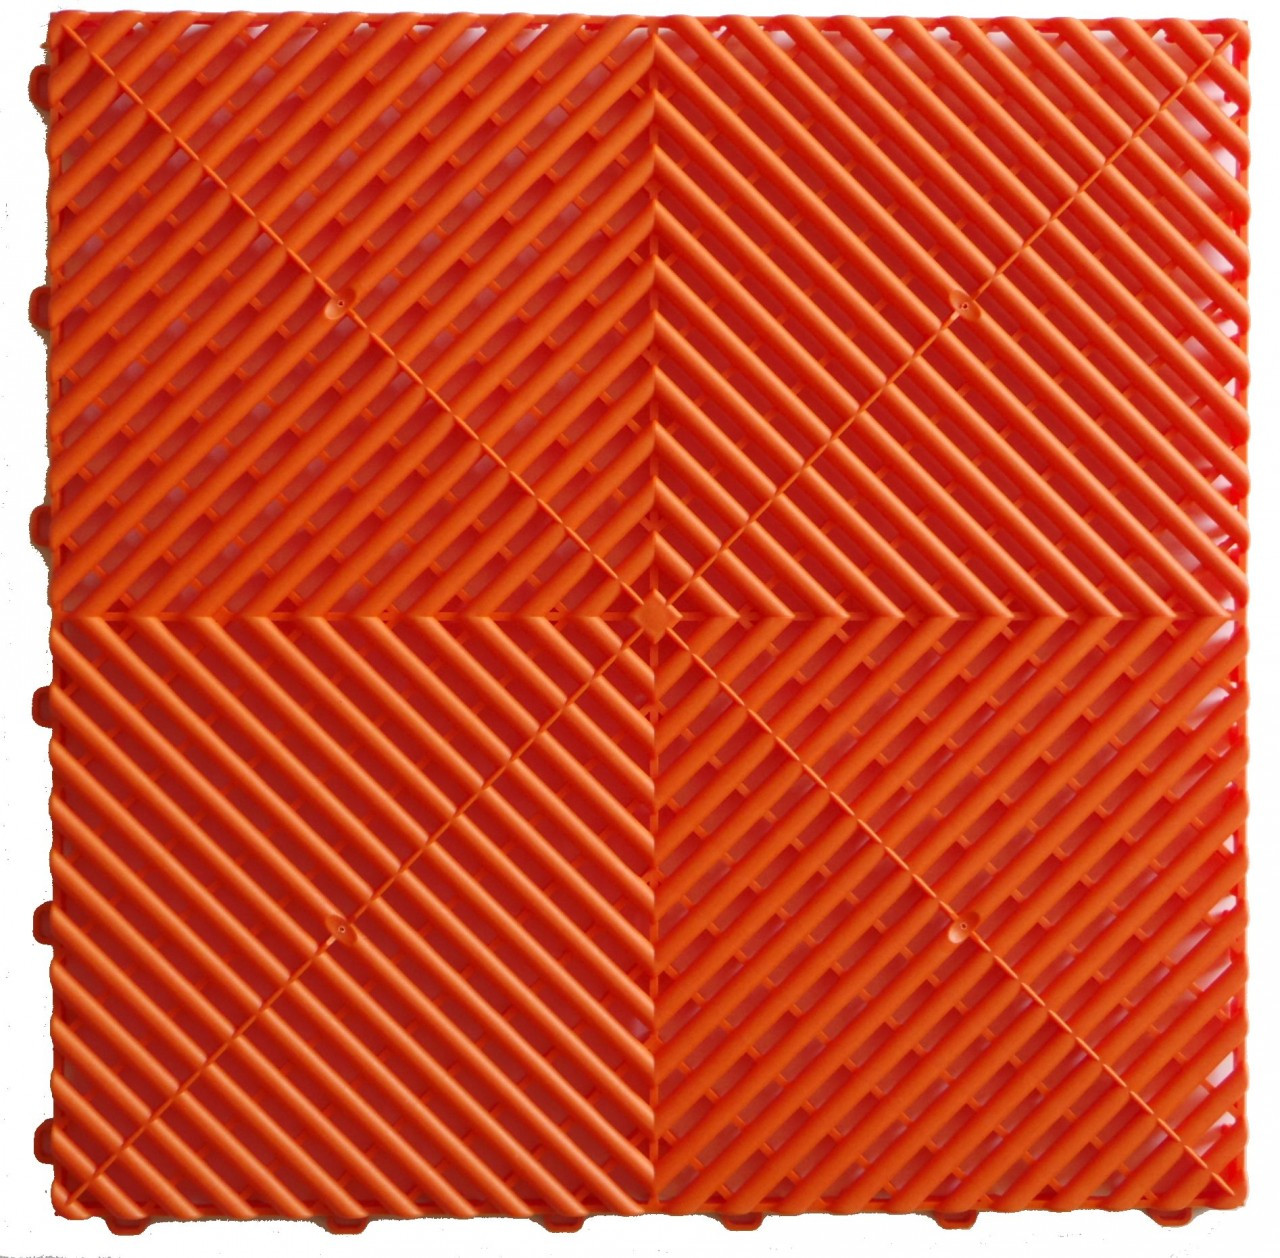 "Ribtrax ""Tropical Orange"" SALE PRICE ONLY $3.96 PER SQ FT - Tile Size: 15 3/4"" x 15 3/4"" (1 Tile = 1.72 sq ft)"